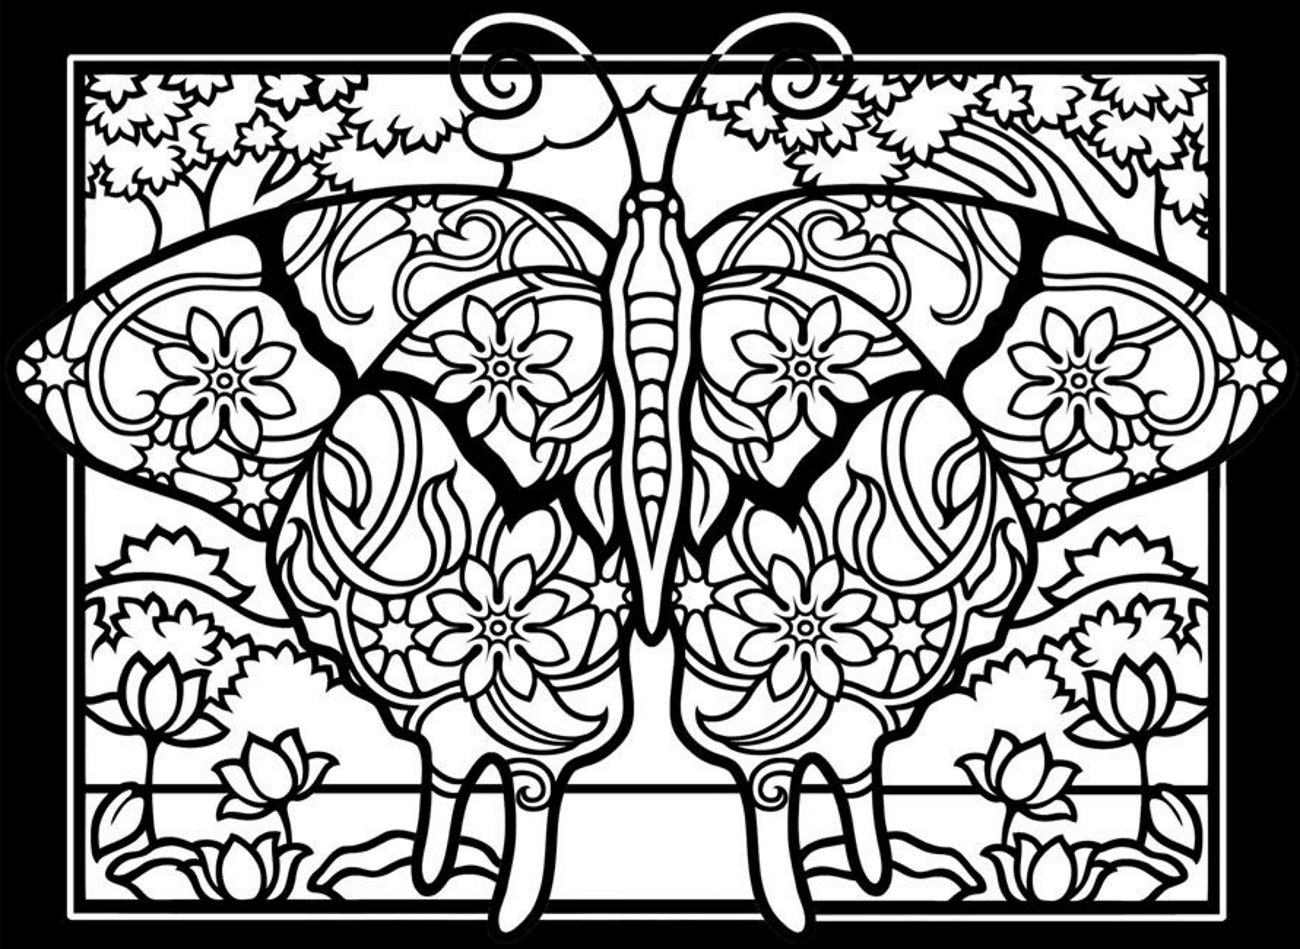 Bee and butterfly coloring pages - Coloring Adult Difficult Butterflies Black Background Free To Print